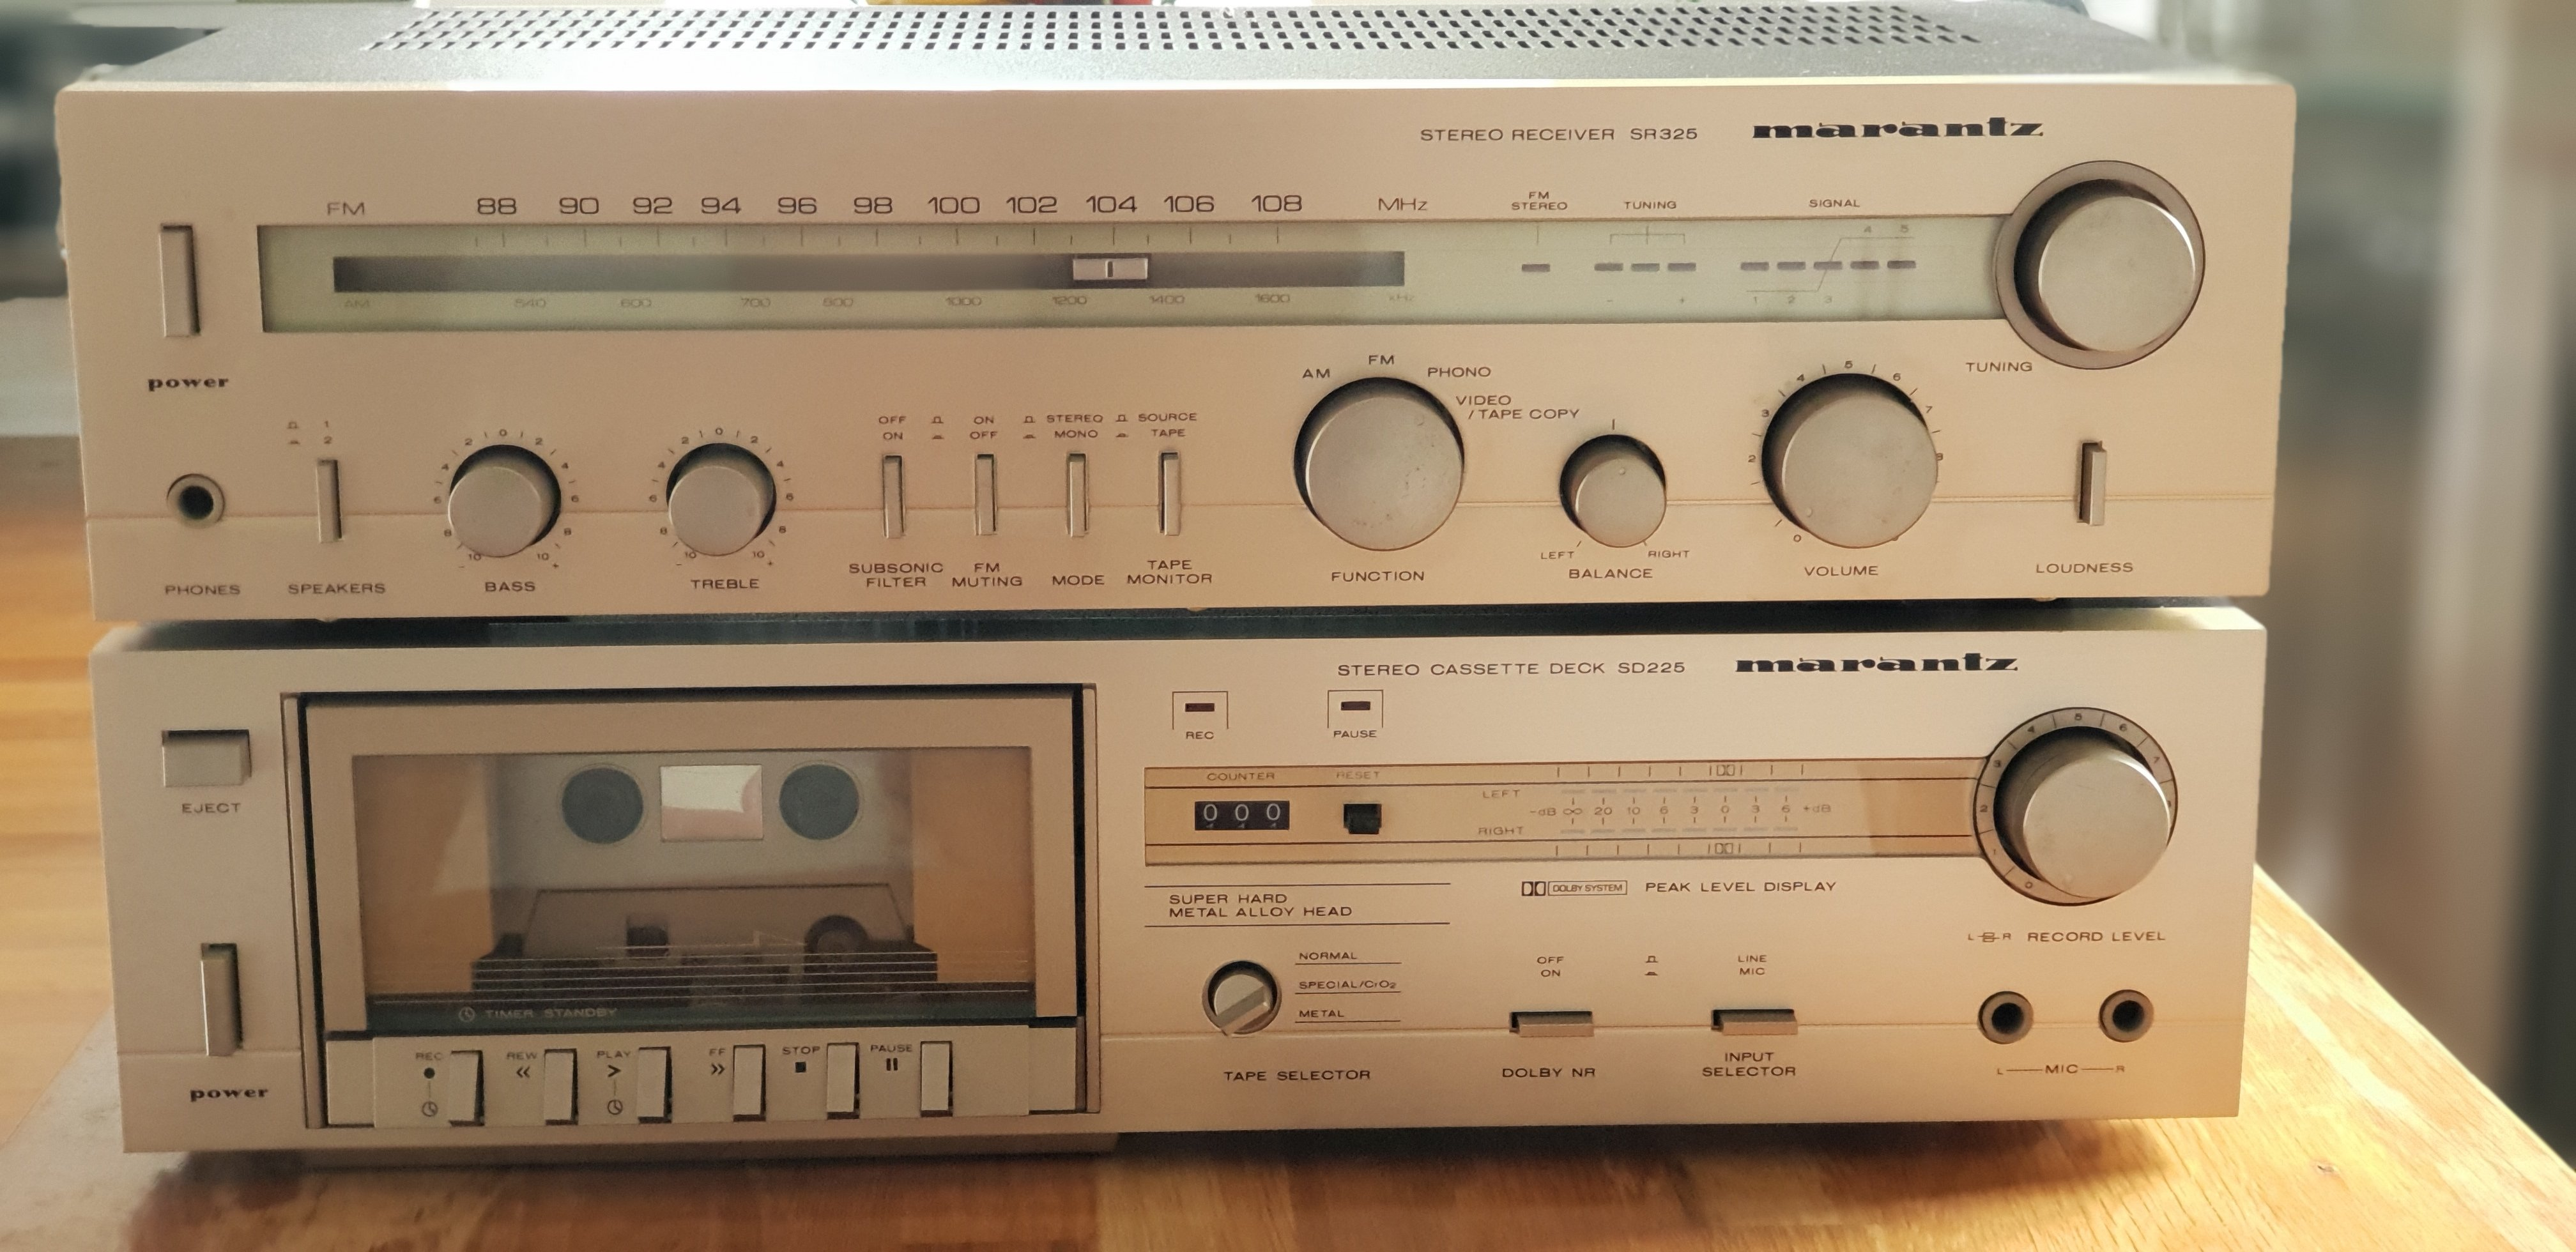 sold fs marantz sr325 amp receiver sd225 tape deck. Black Bedroom Furniture Sets. Home Design Ideas